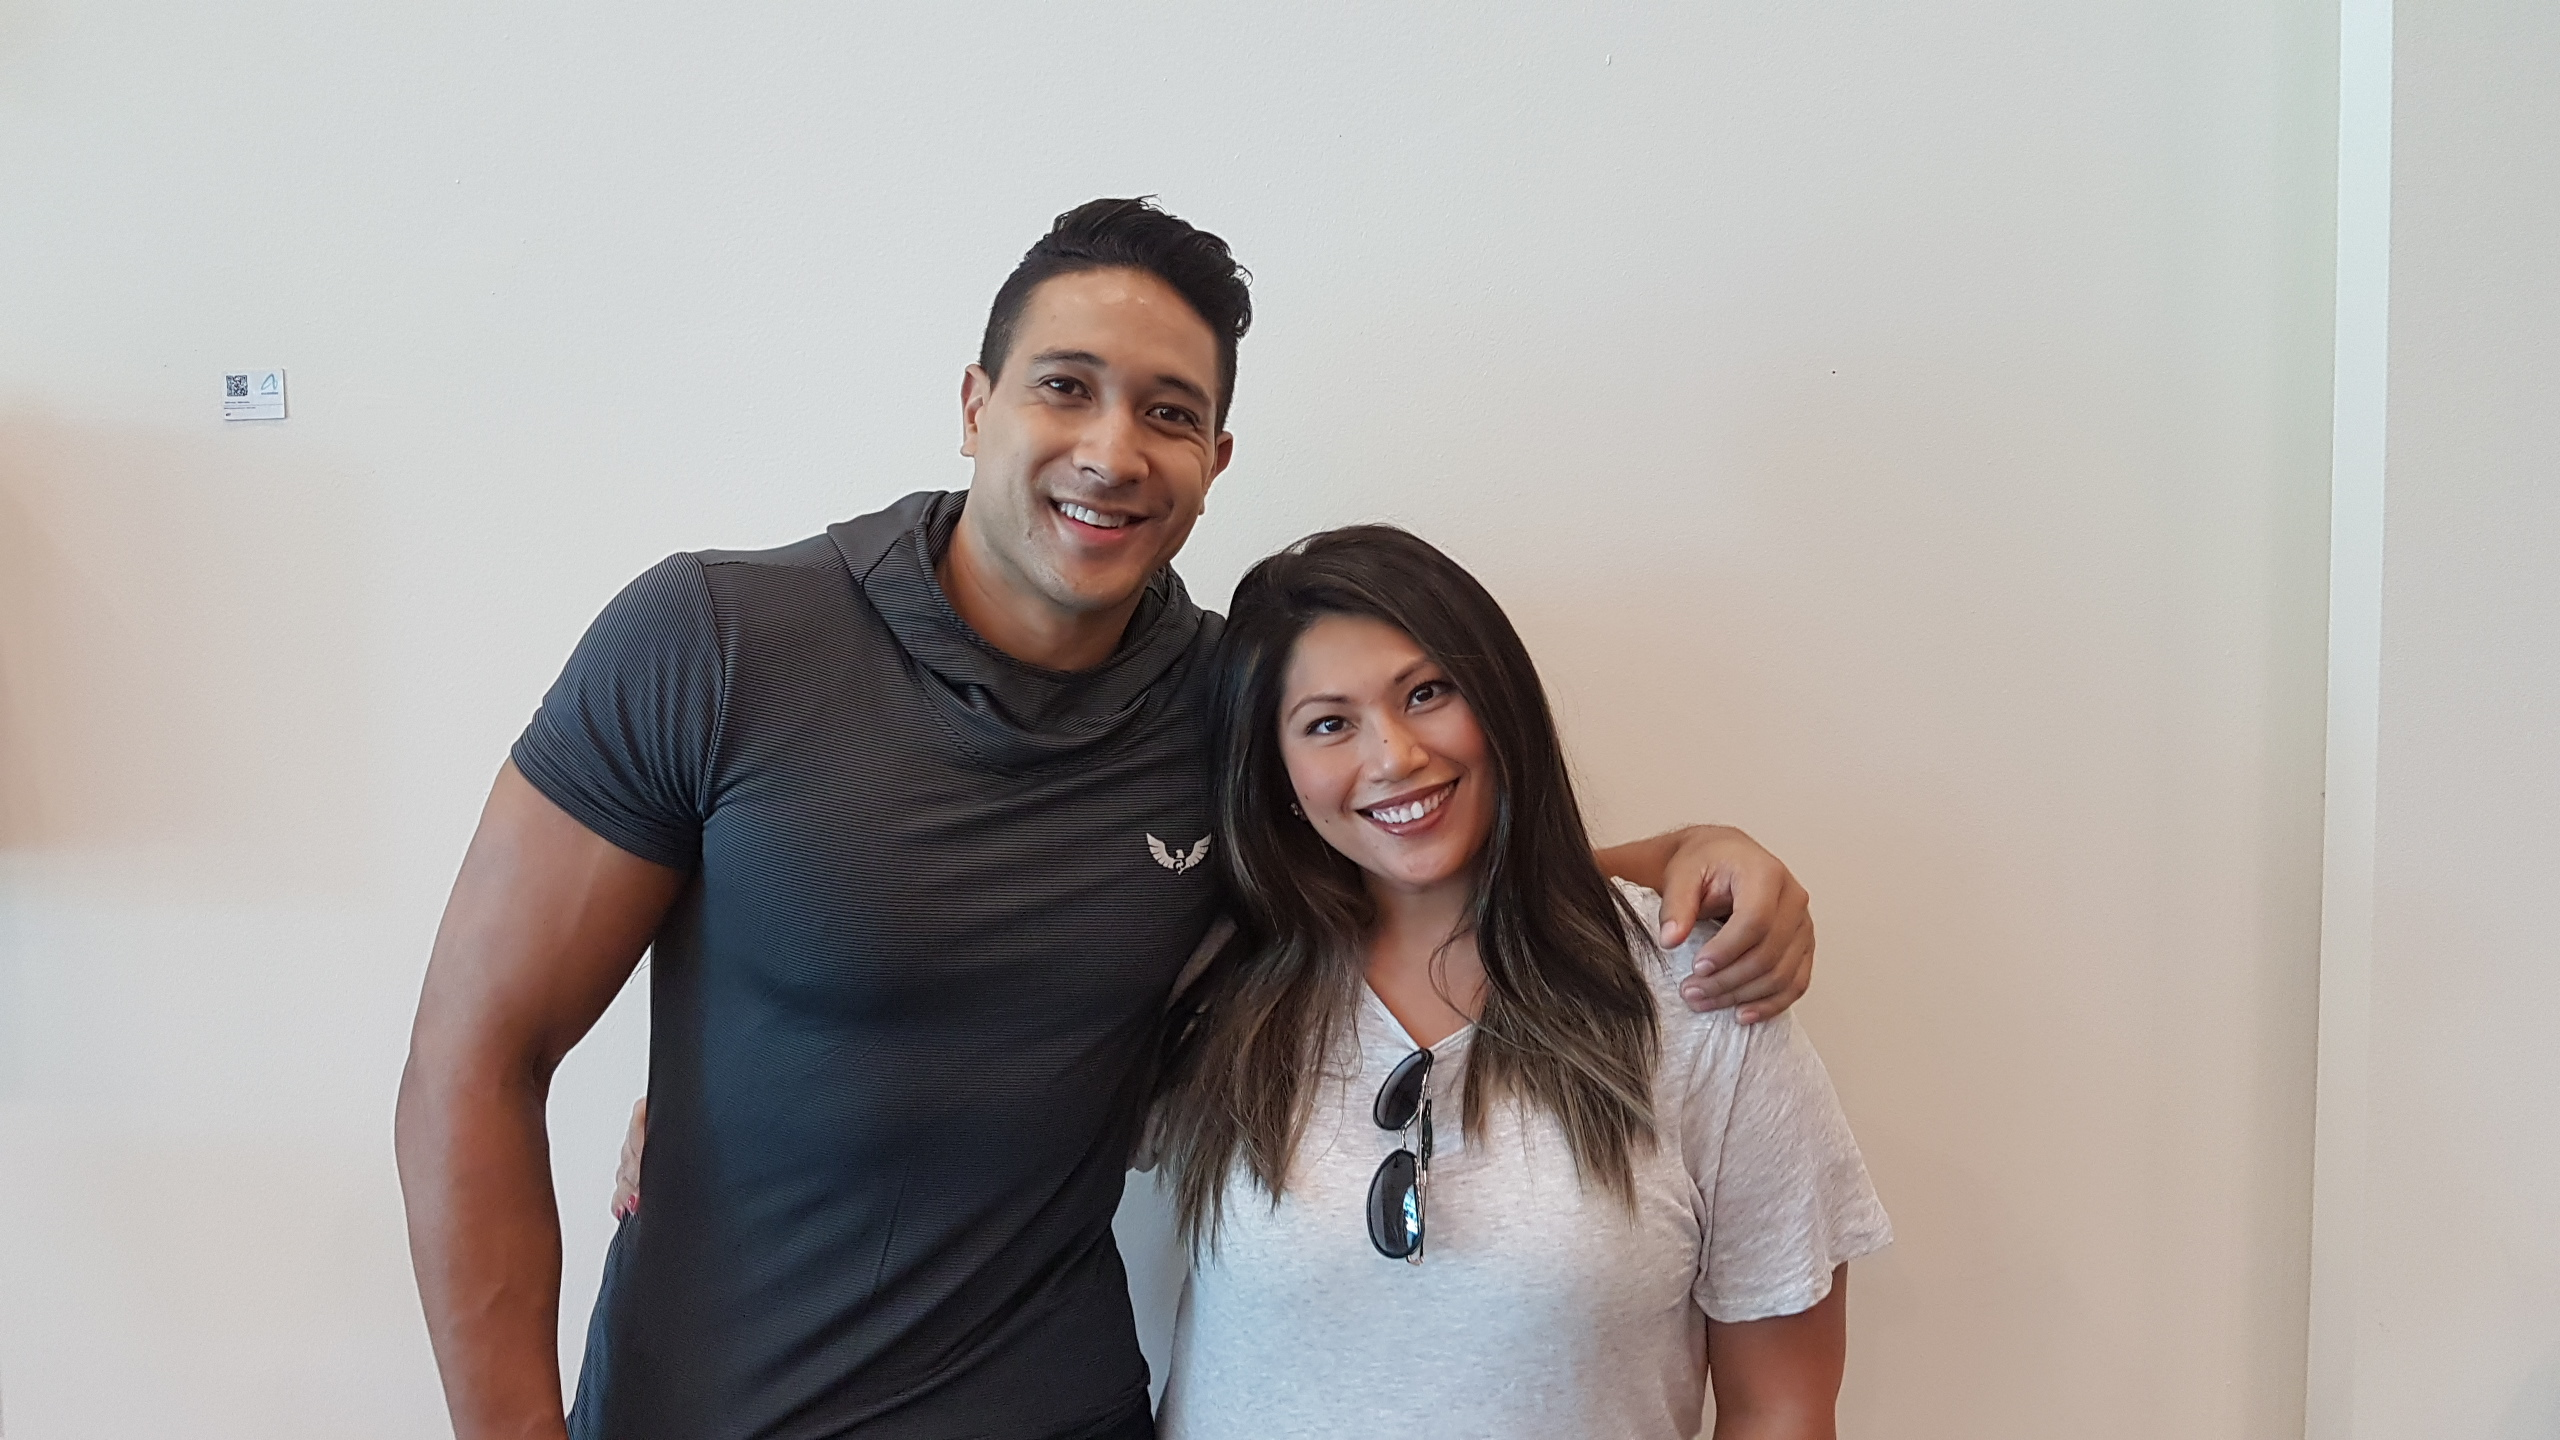 Eric Tai and Rona Samson. Photo courtesy of AXN Asia